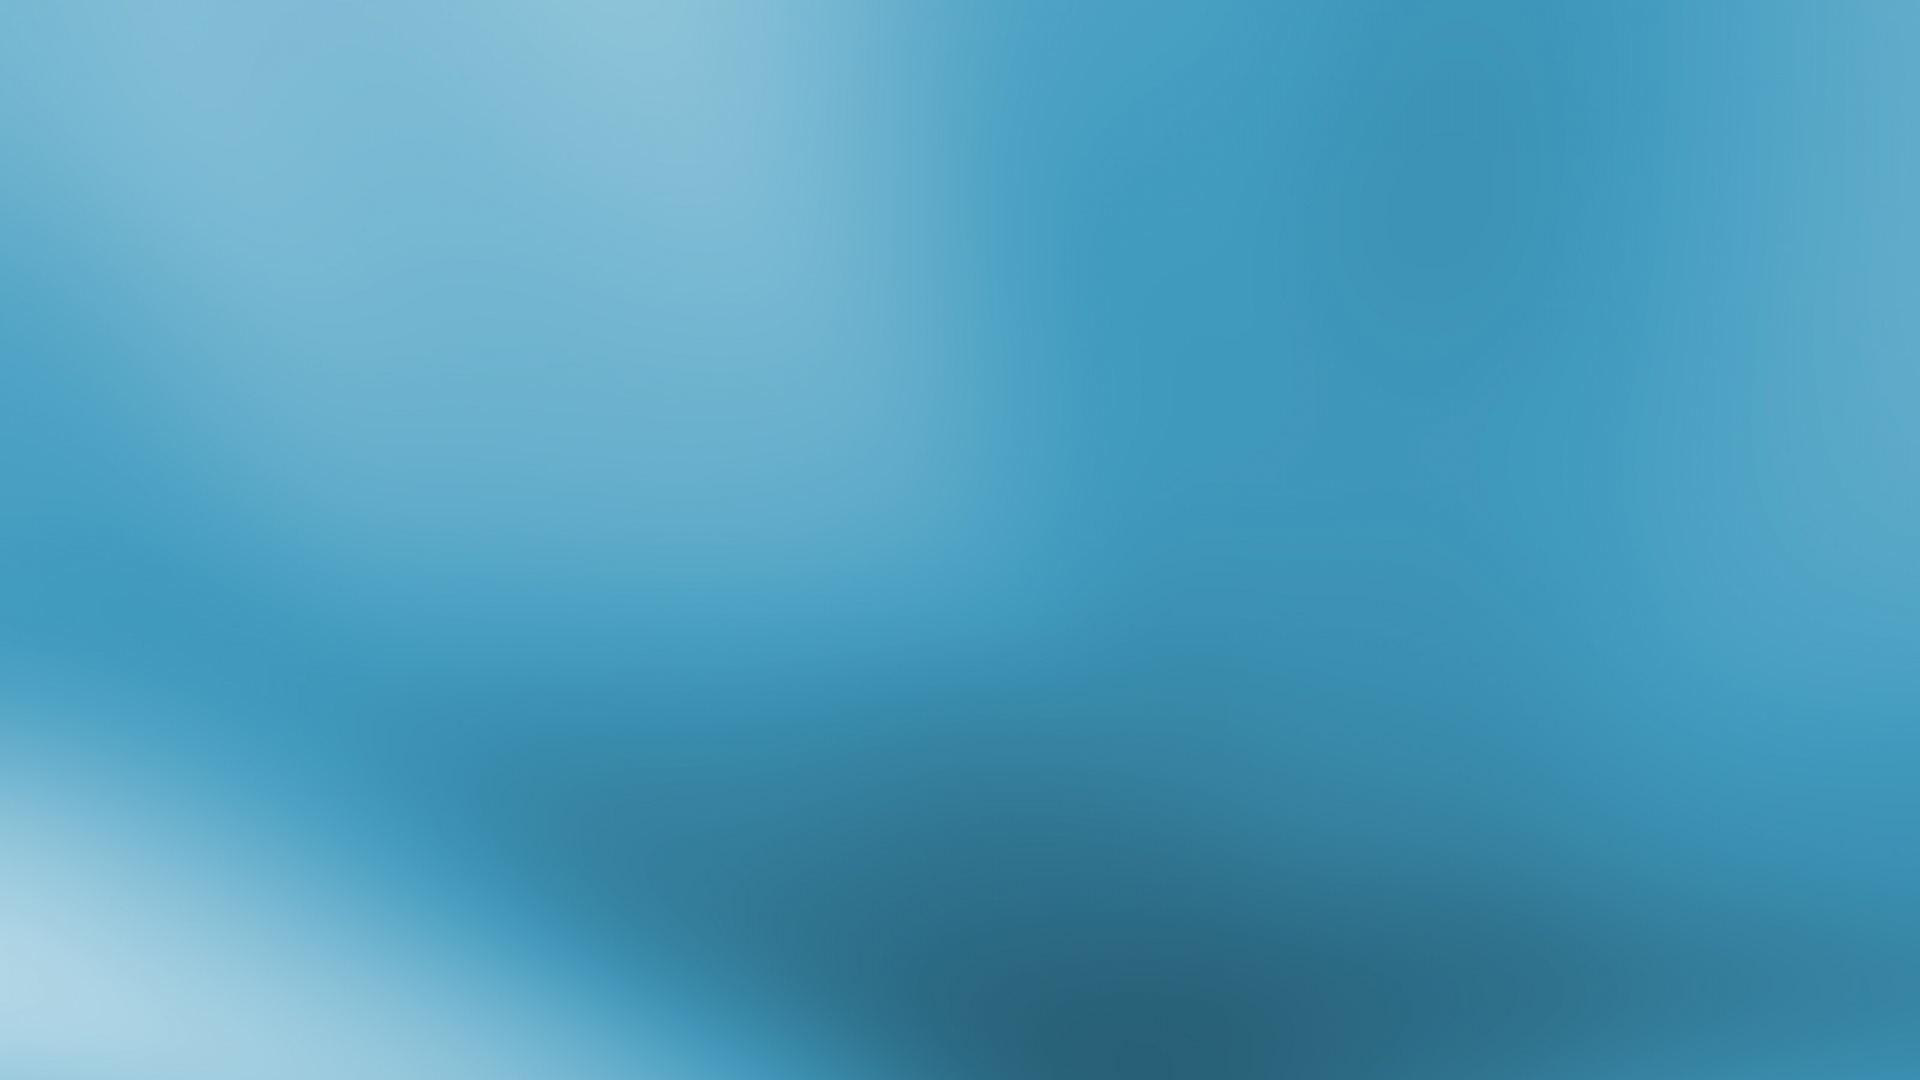 Earnings Disclaimer >> Download Wallpaper 1920x1080 blue, bright, matte, solid ...